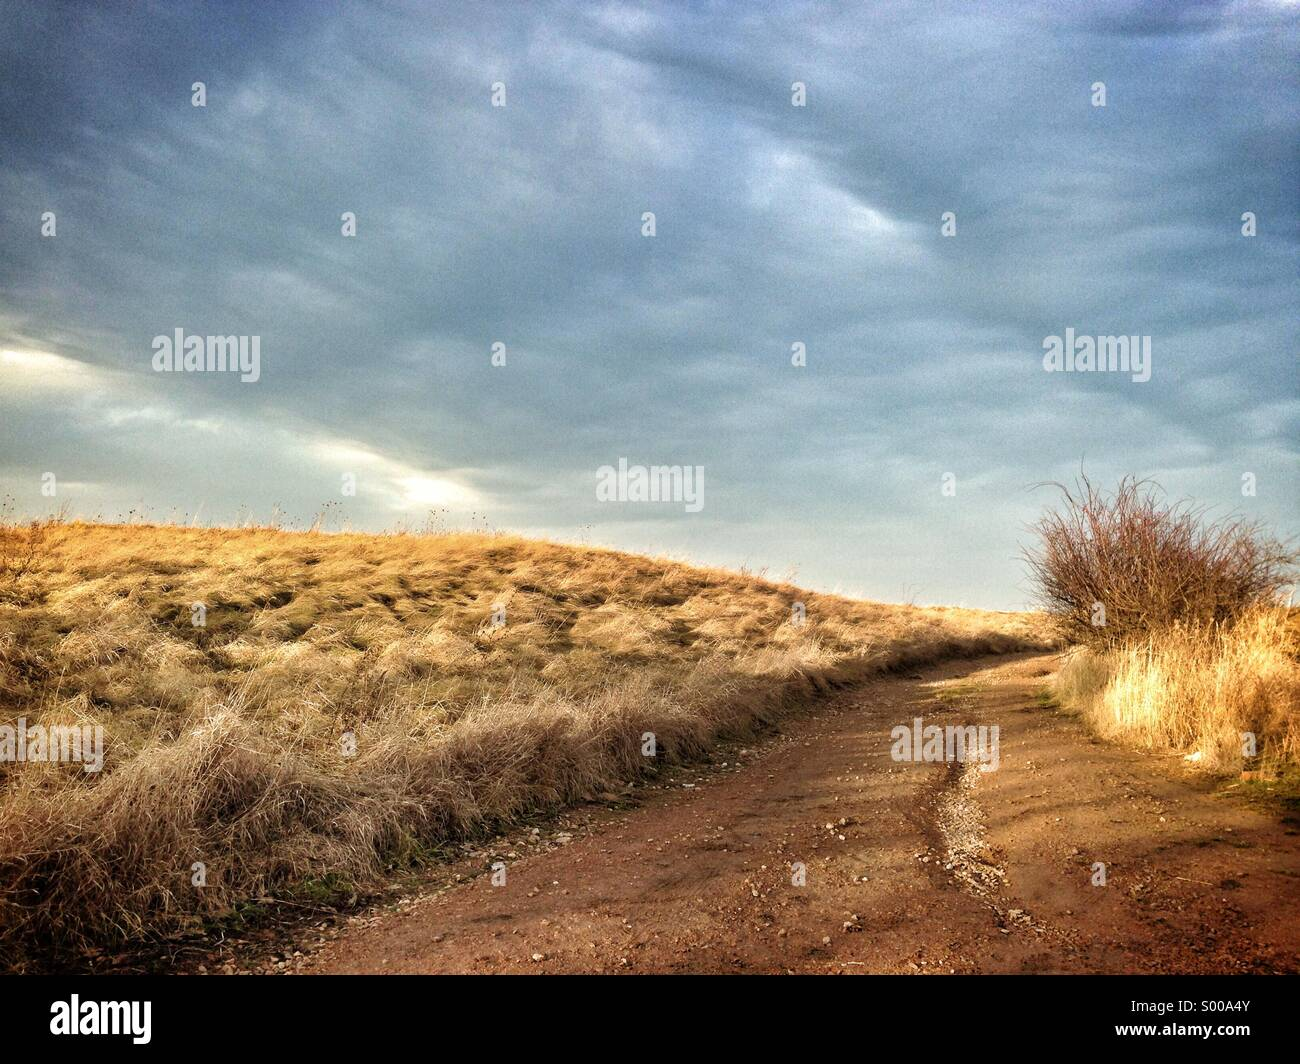 A dirt trail leading through a field - Stock Image